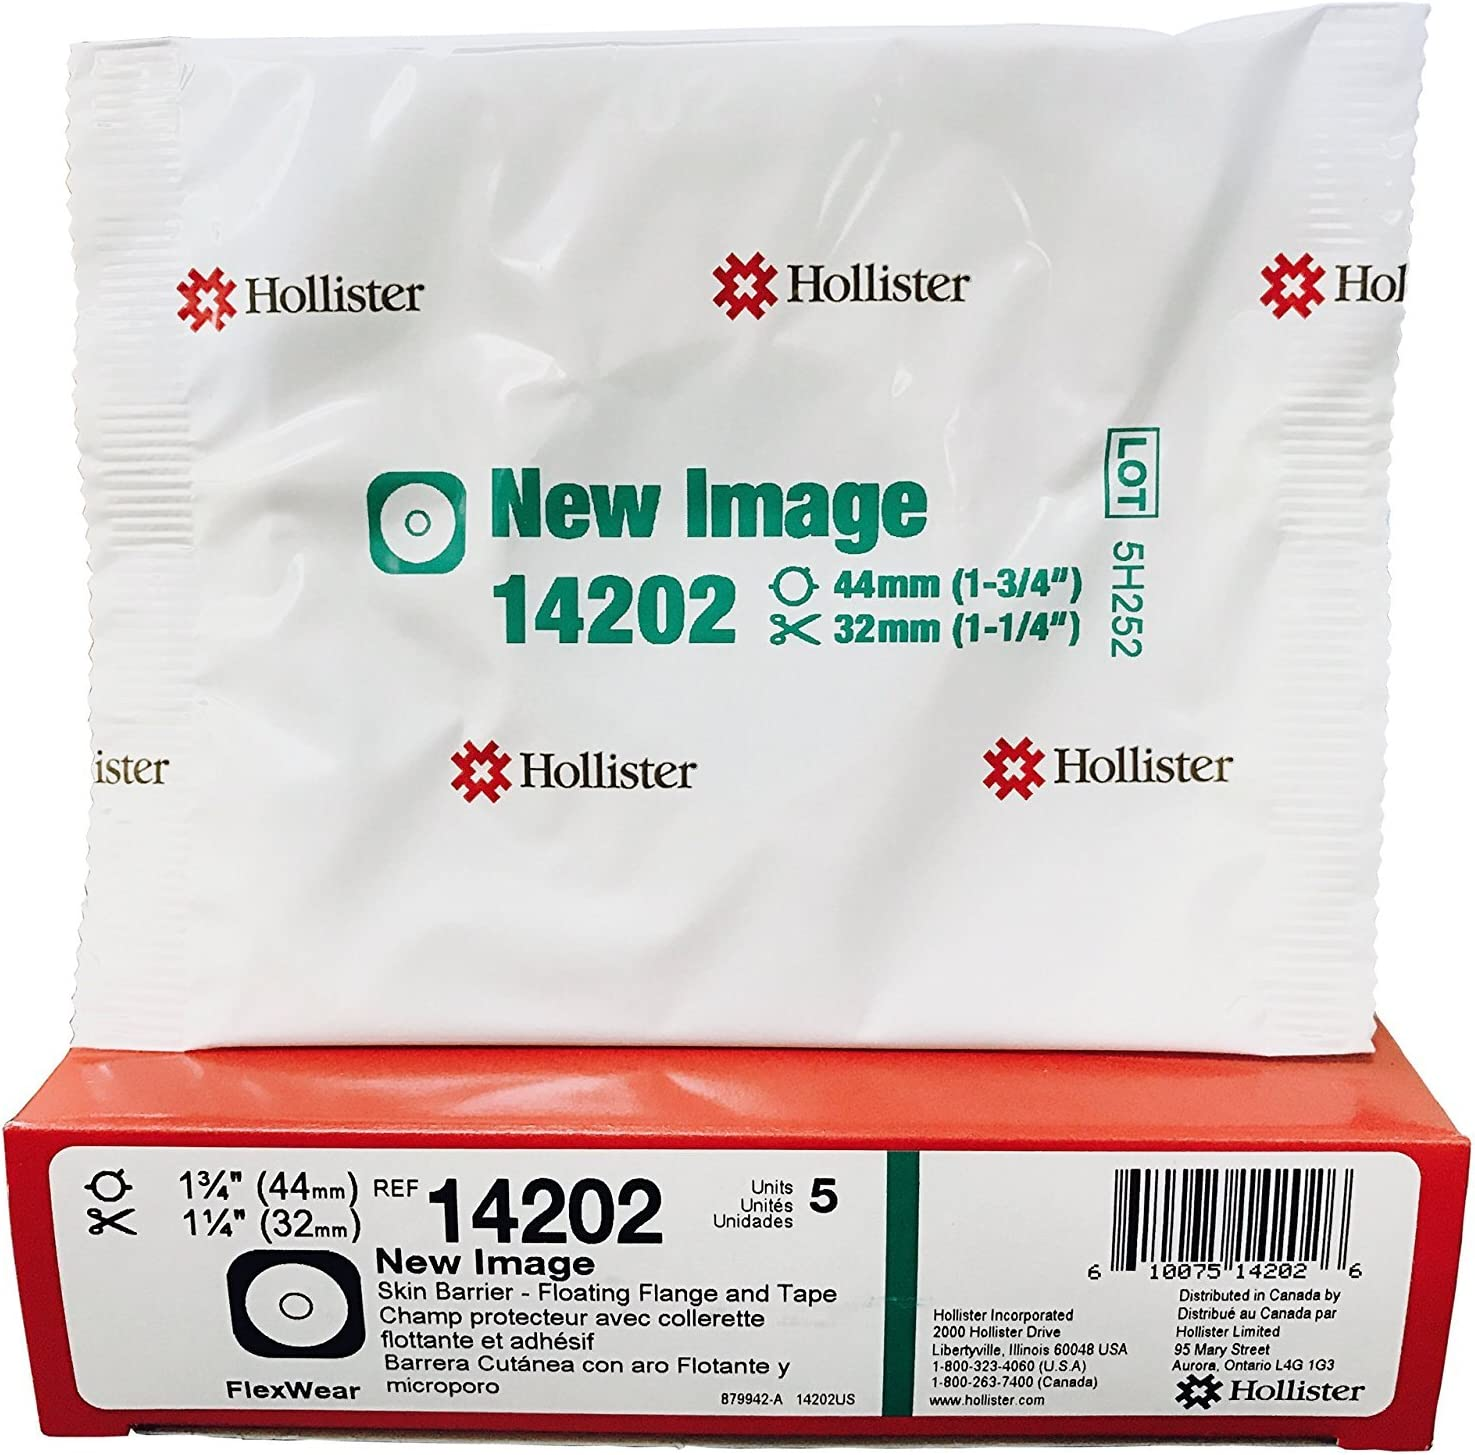 "B0002Q0RD2 New Image Cut-to-Fit FlexWear Skin Barrier with Tape - Floating Flange - Flang: 1-3/4"", Cut up to: 1-1/4"", Green - Box of 5 81S0zSEczPL"